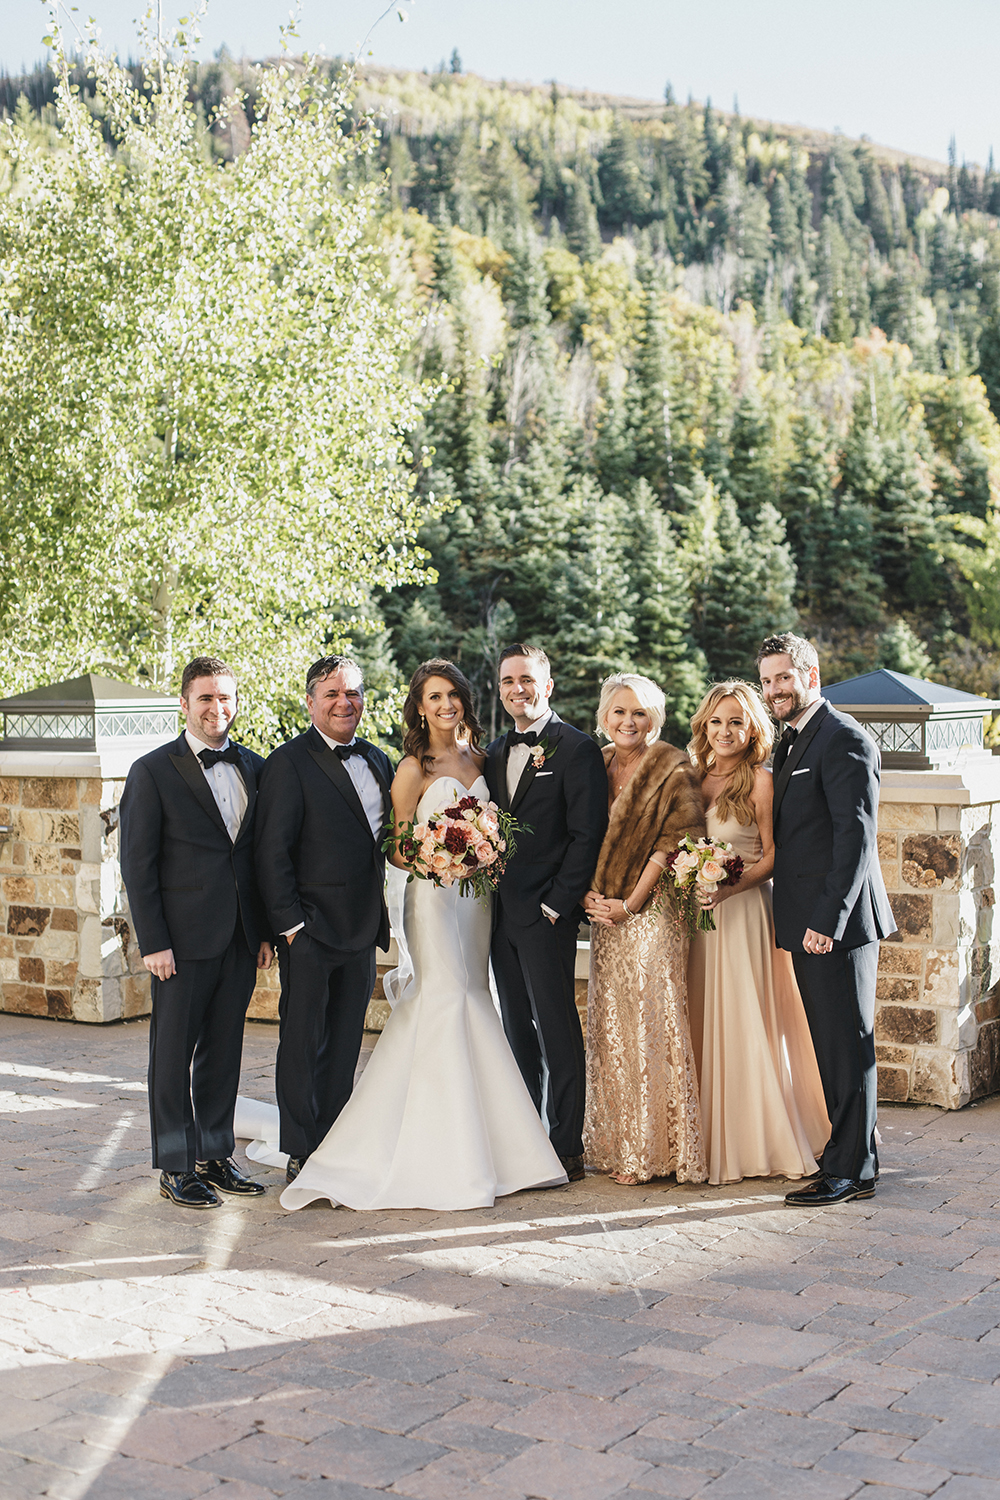 St Regis Deer Valley Wedding99.jpg